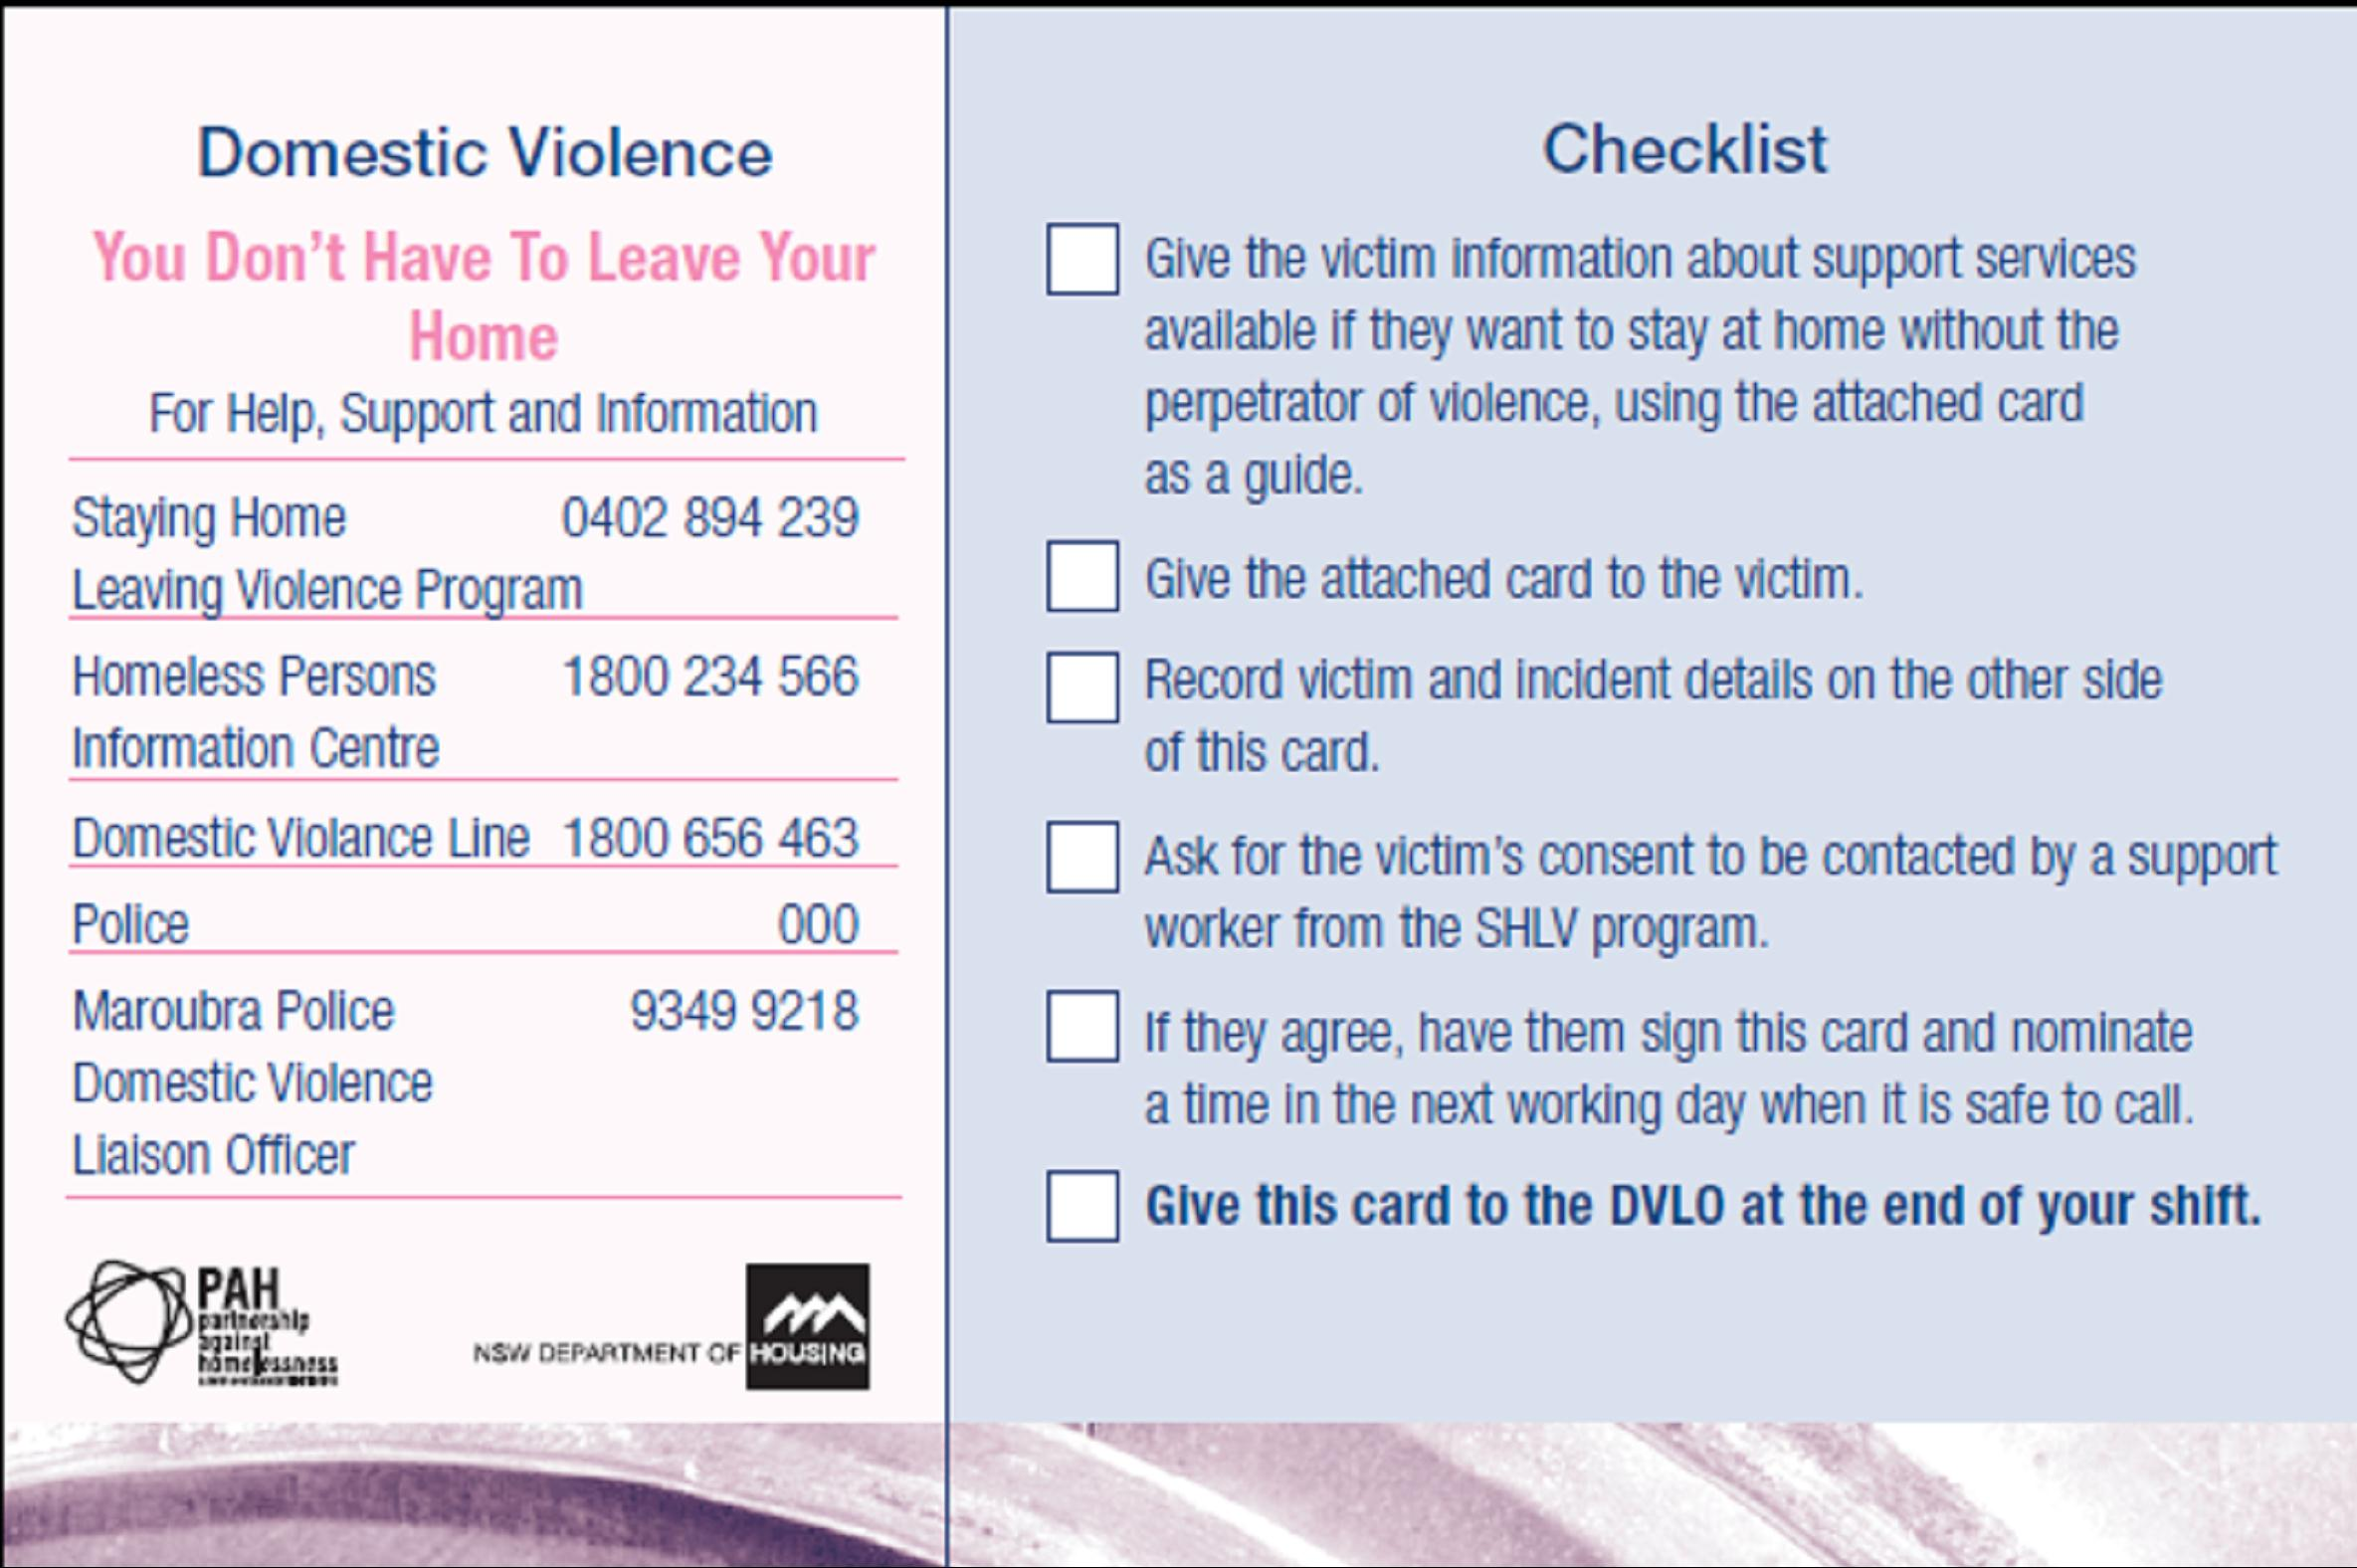 Free Worksheet Domestic Violence Safety Plan Worksheet domestic violence safety plan worksheet abitlikethis civil remedies police support e g providing information on the